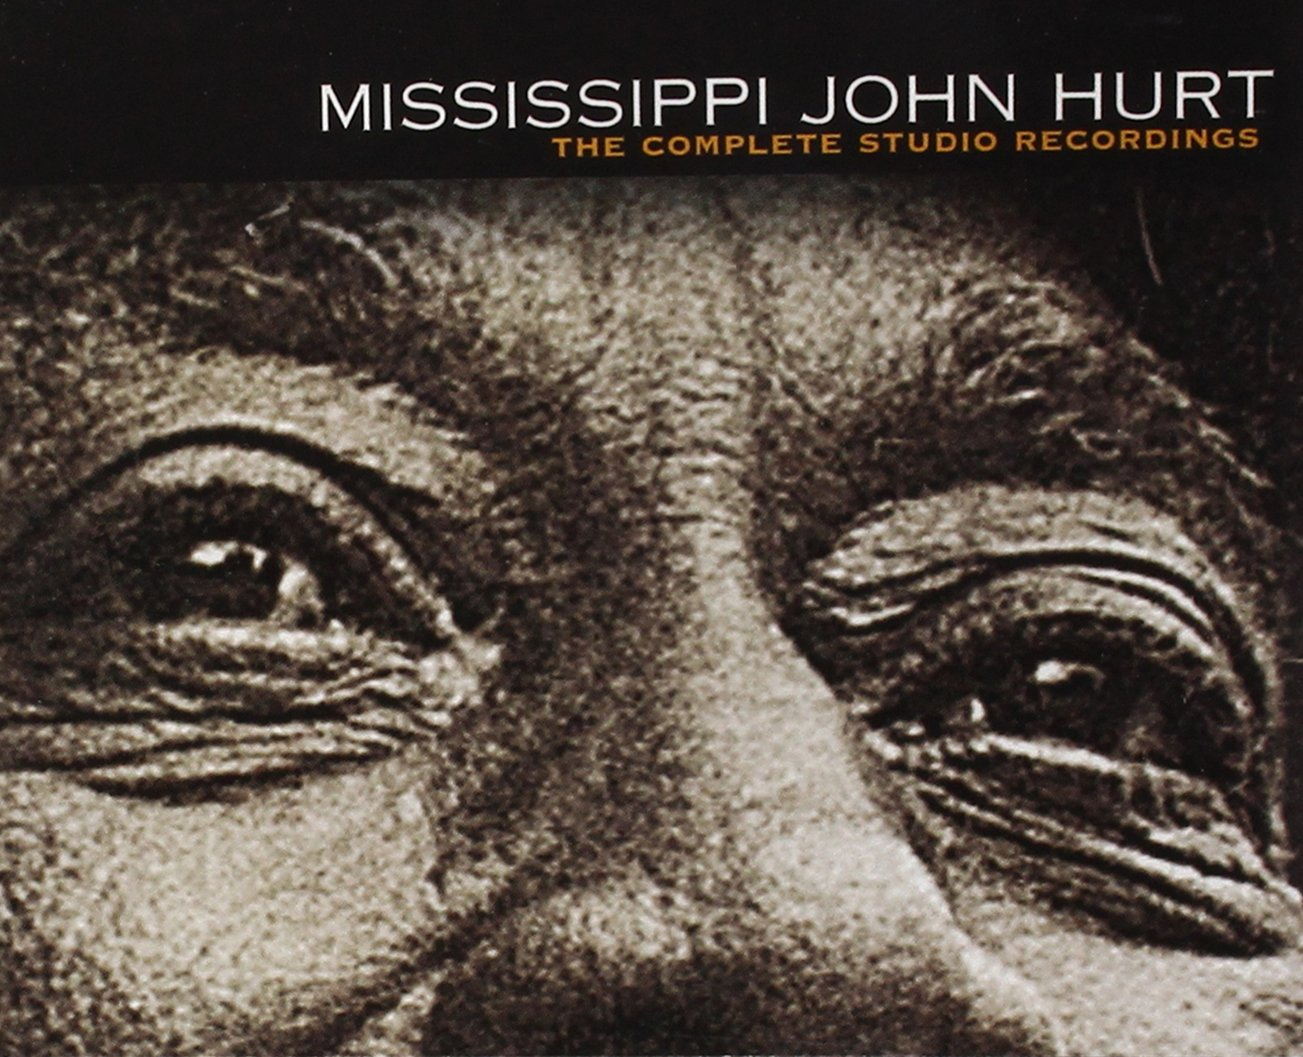 The Complete Studio Recordings Mississippi John Hurt by CD